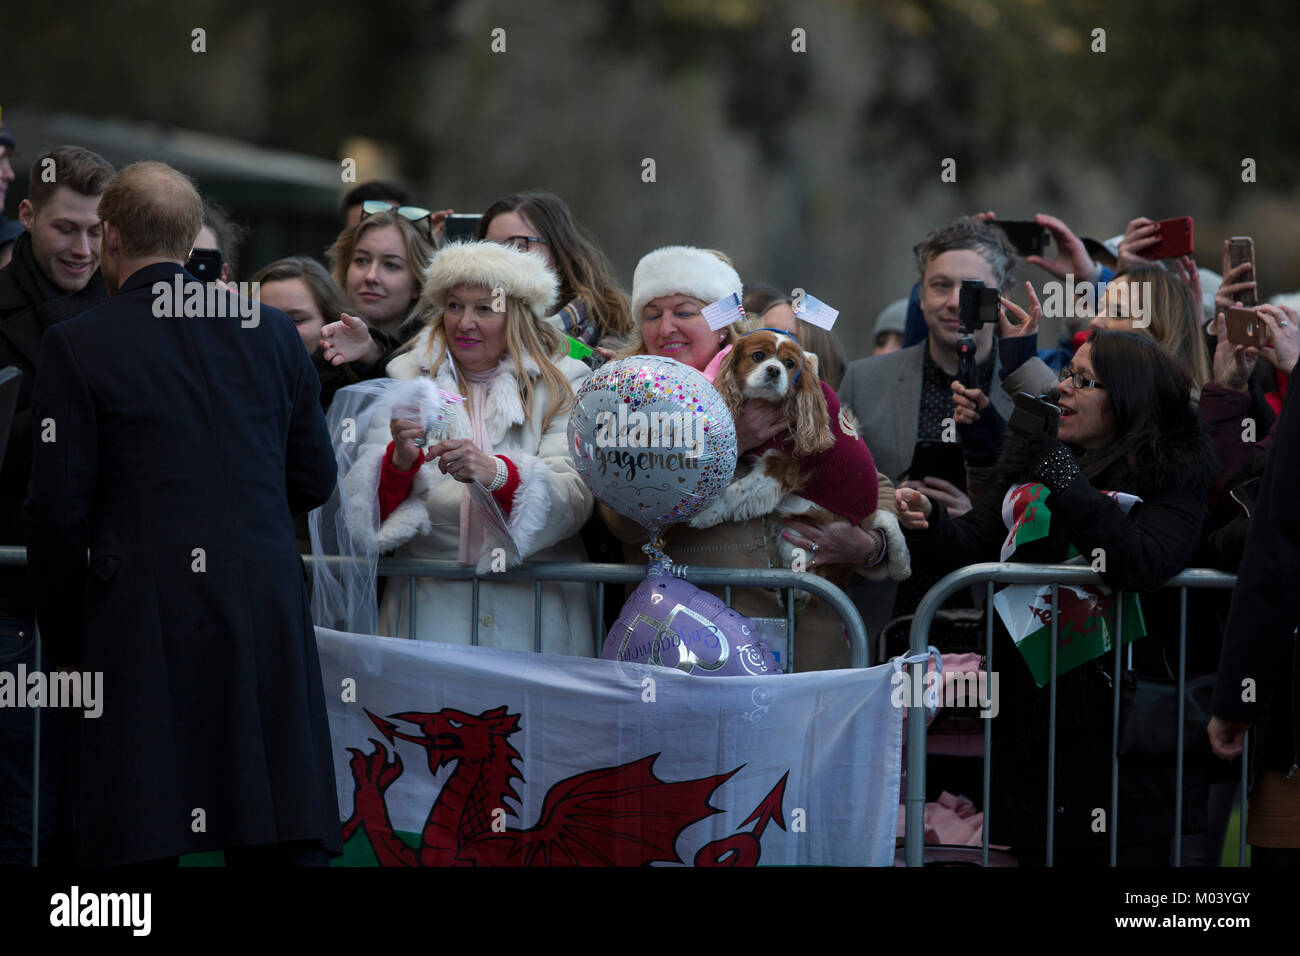 Cardiff, UK. 18th Jan, 2018. eager crowds greet Prince Harry and Ms Meghan Markle on their royal engagement tour Stock Photo